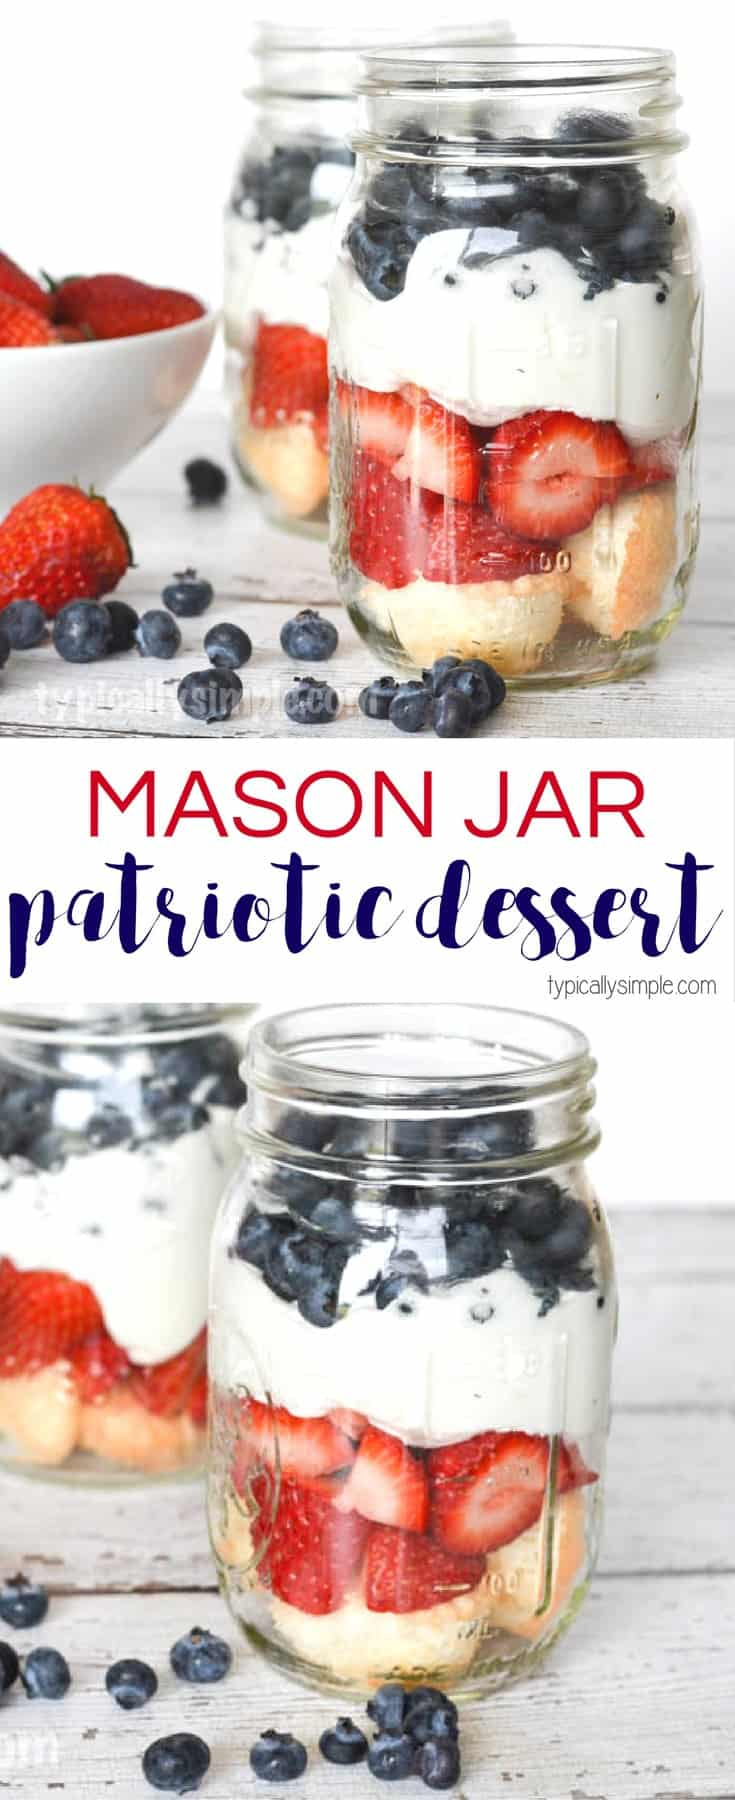 Patriotic red, white and blue mason jar dessert